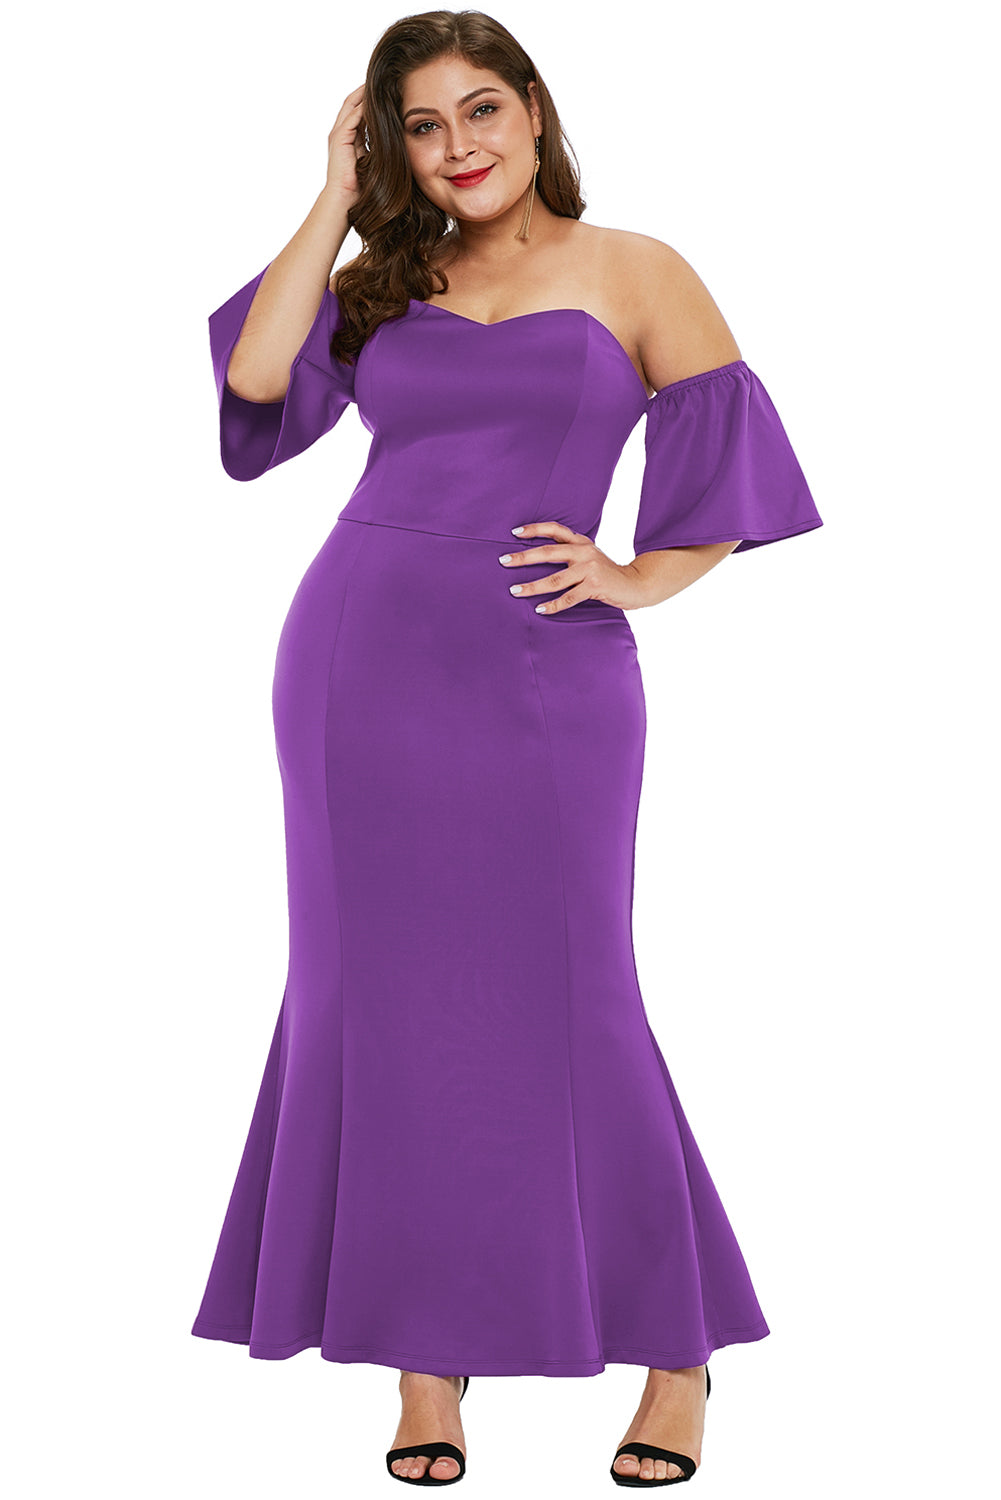 Purple Sexy Strapless Drop Shoulder Plus Size Maxi Dress with Ruffles Plus Size Dresses Discount Designer Fashion Clothes Shoes Bags Women Men Kids Children Black Owned Business